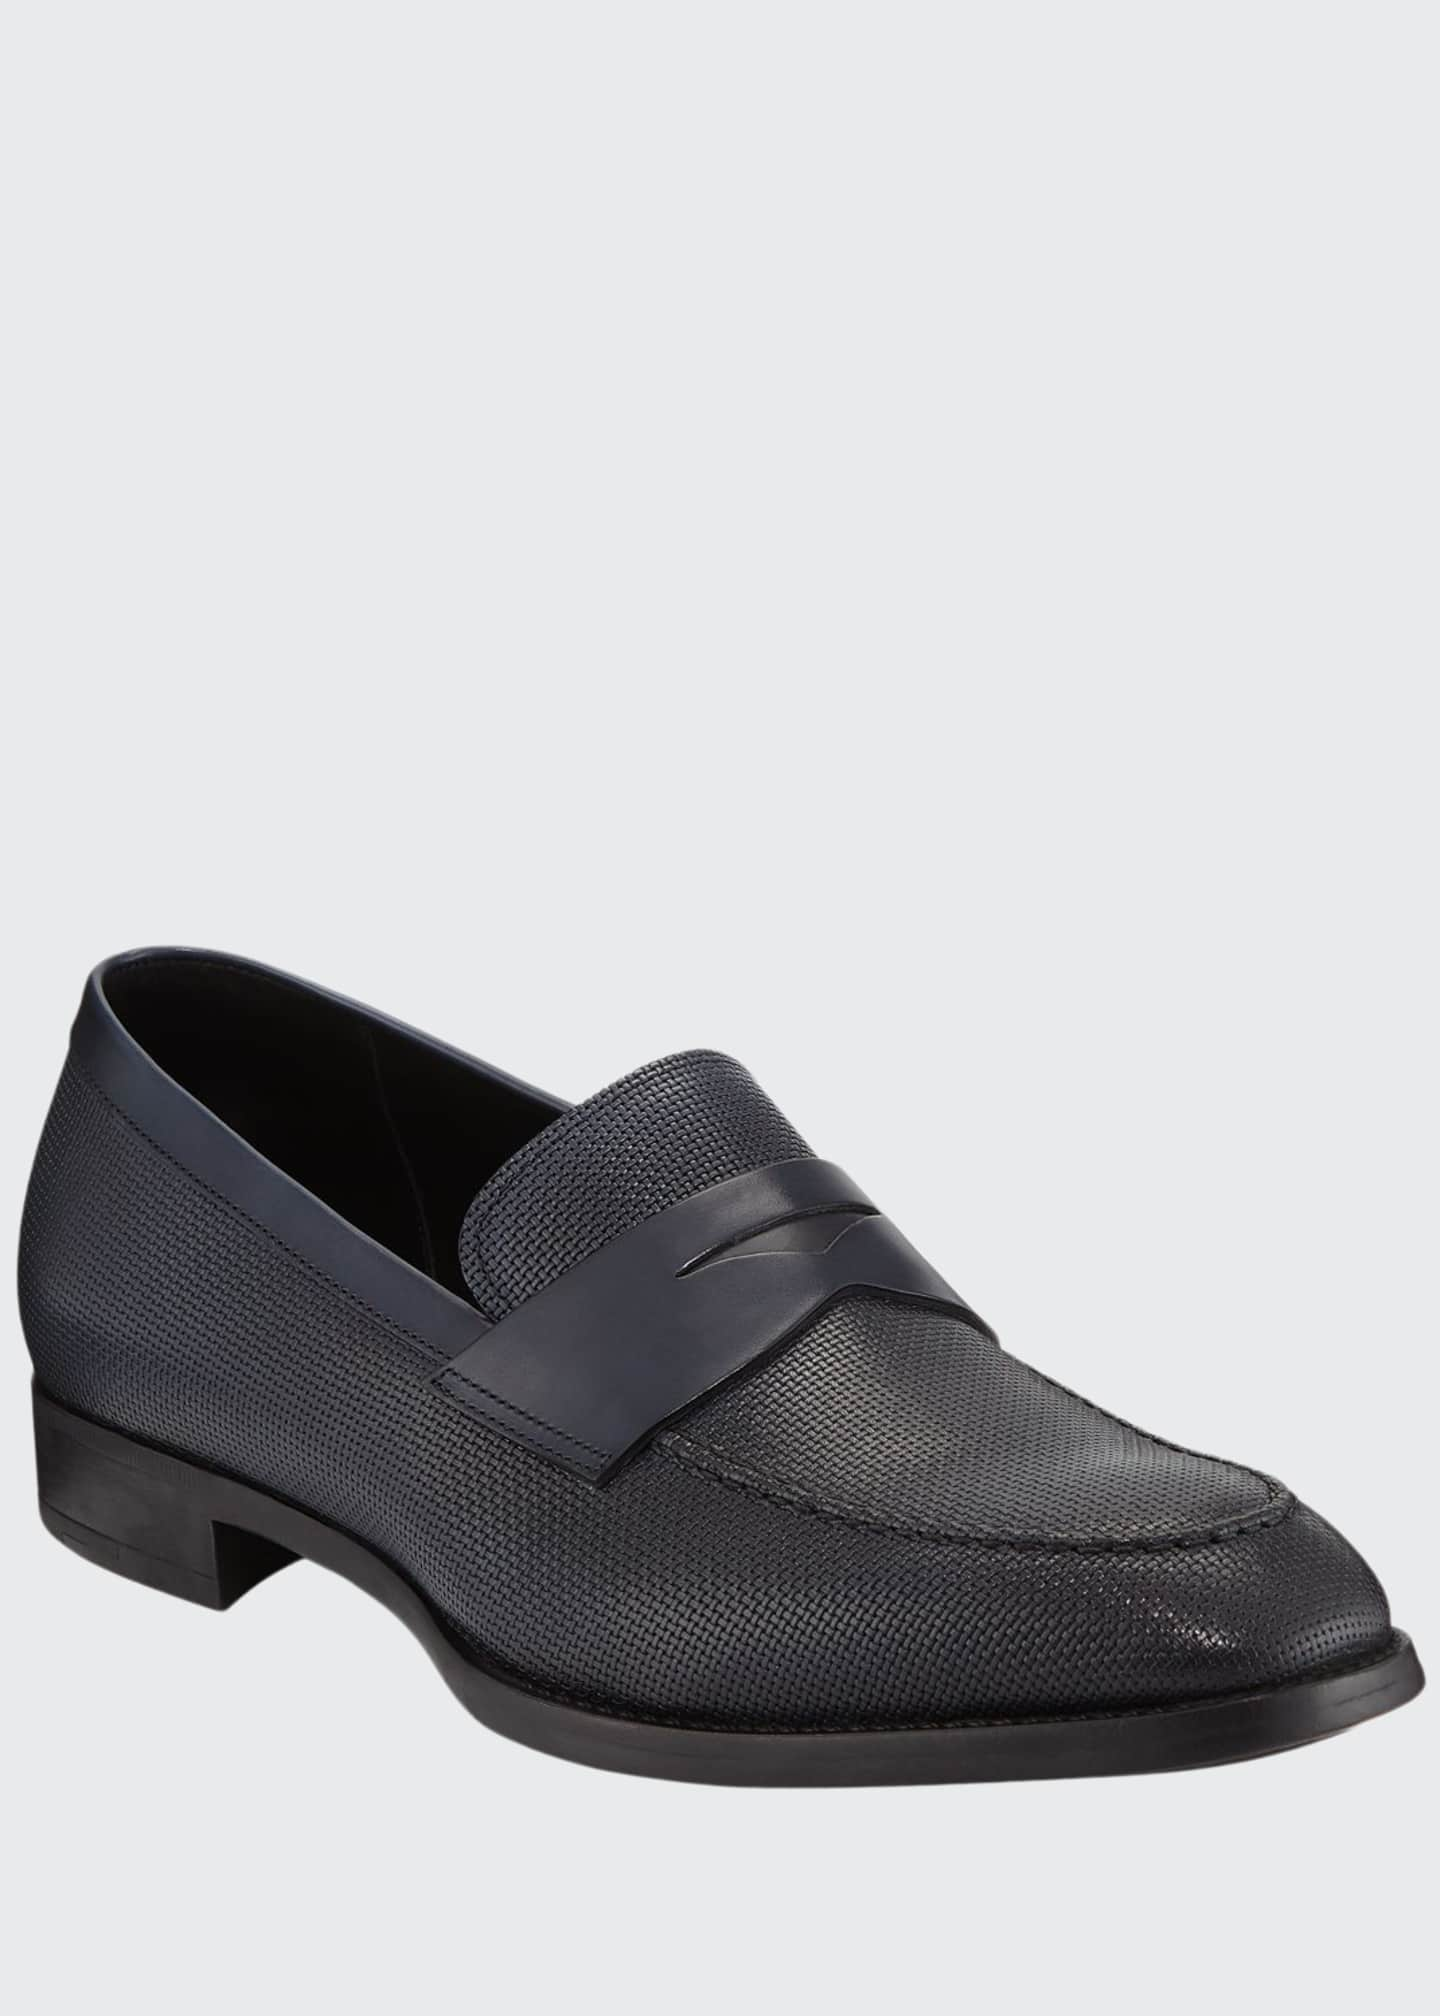 Image 1 of 3: Men's Leather Penny Loafers